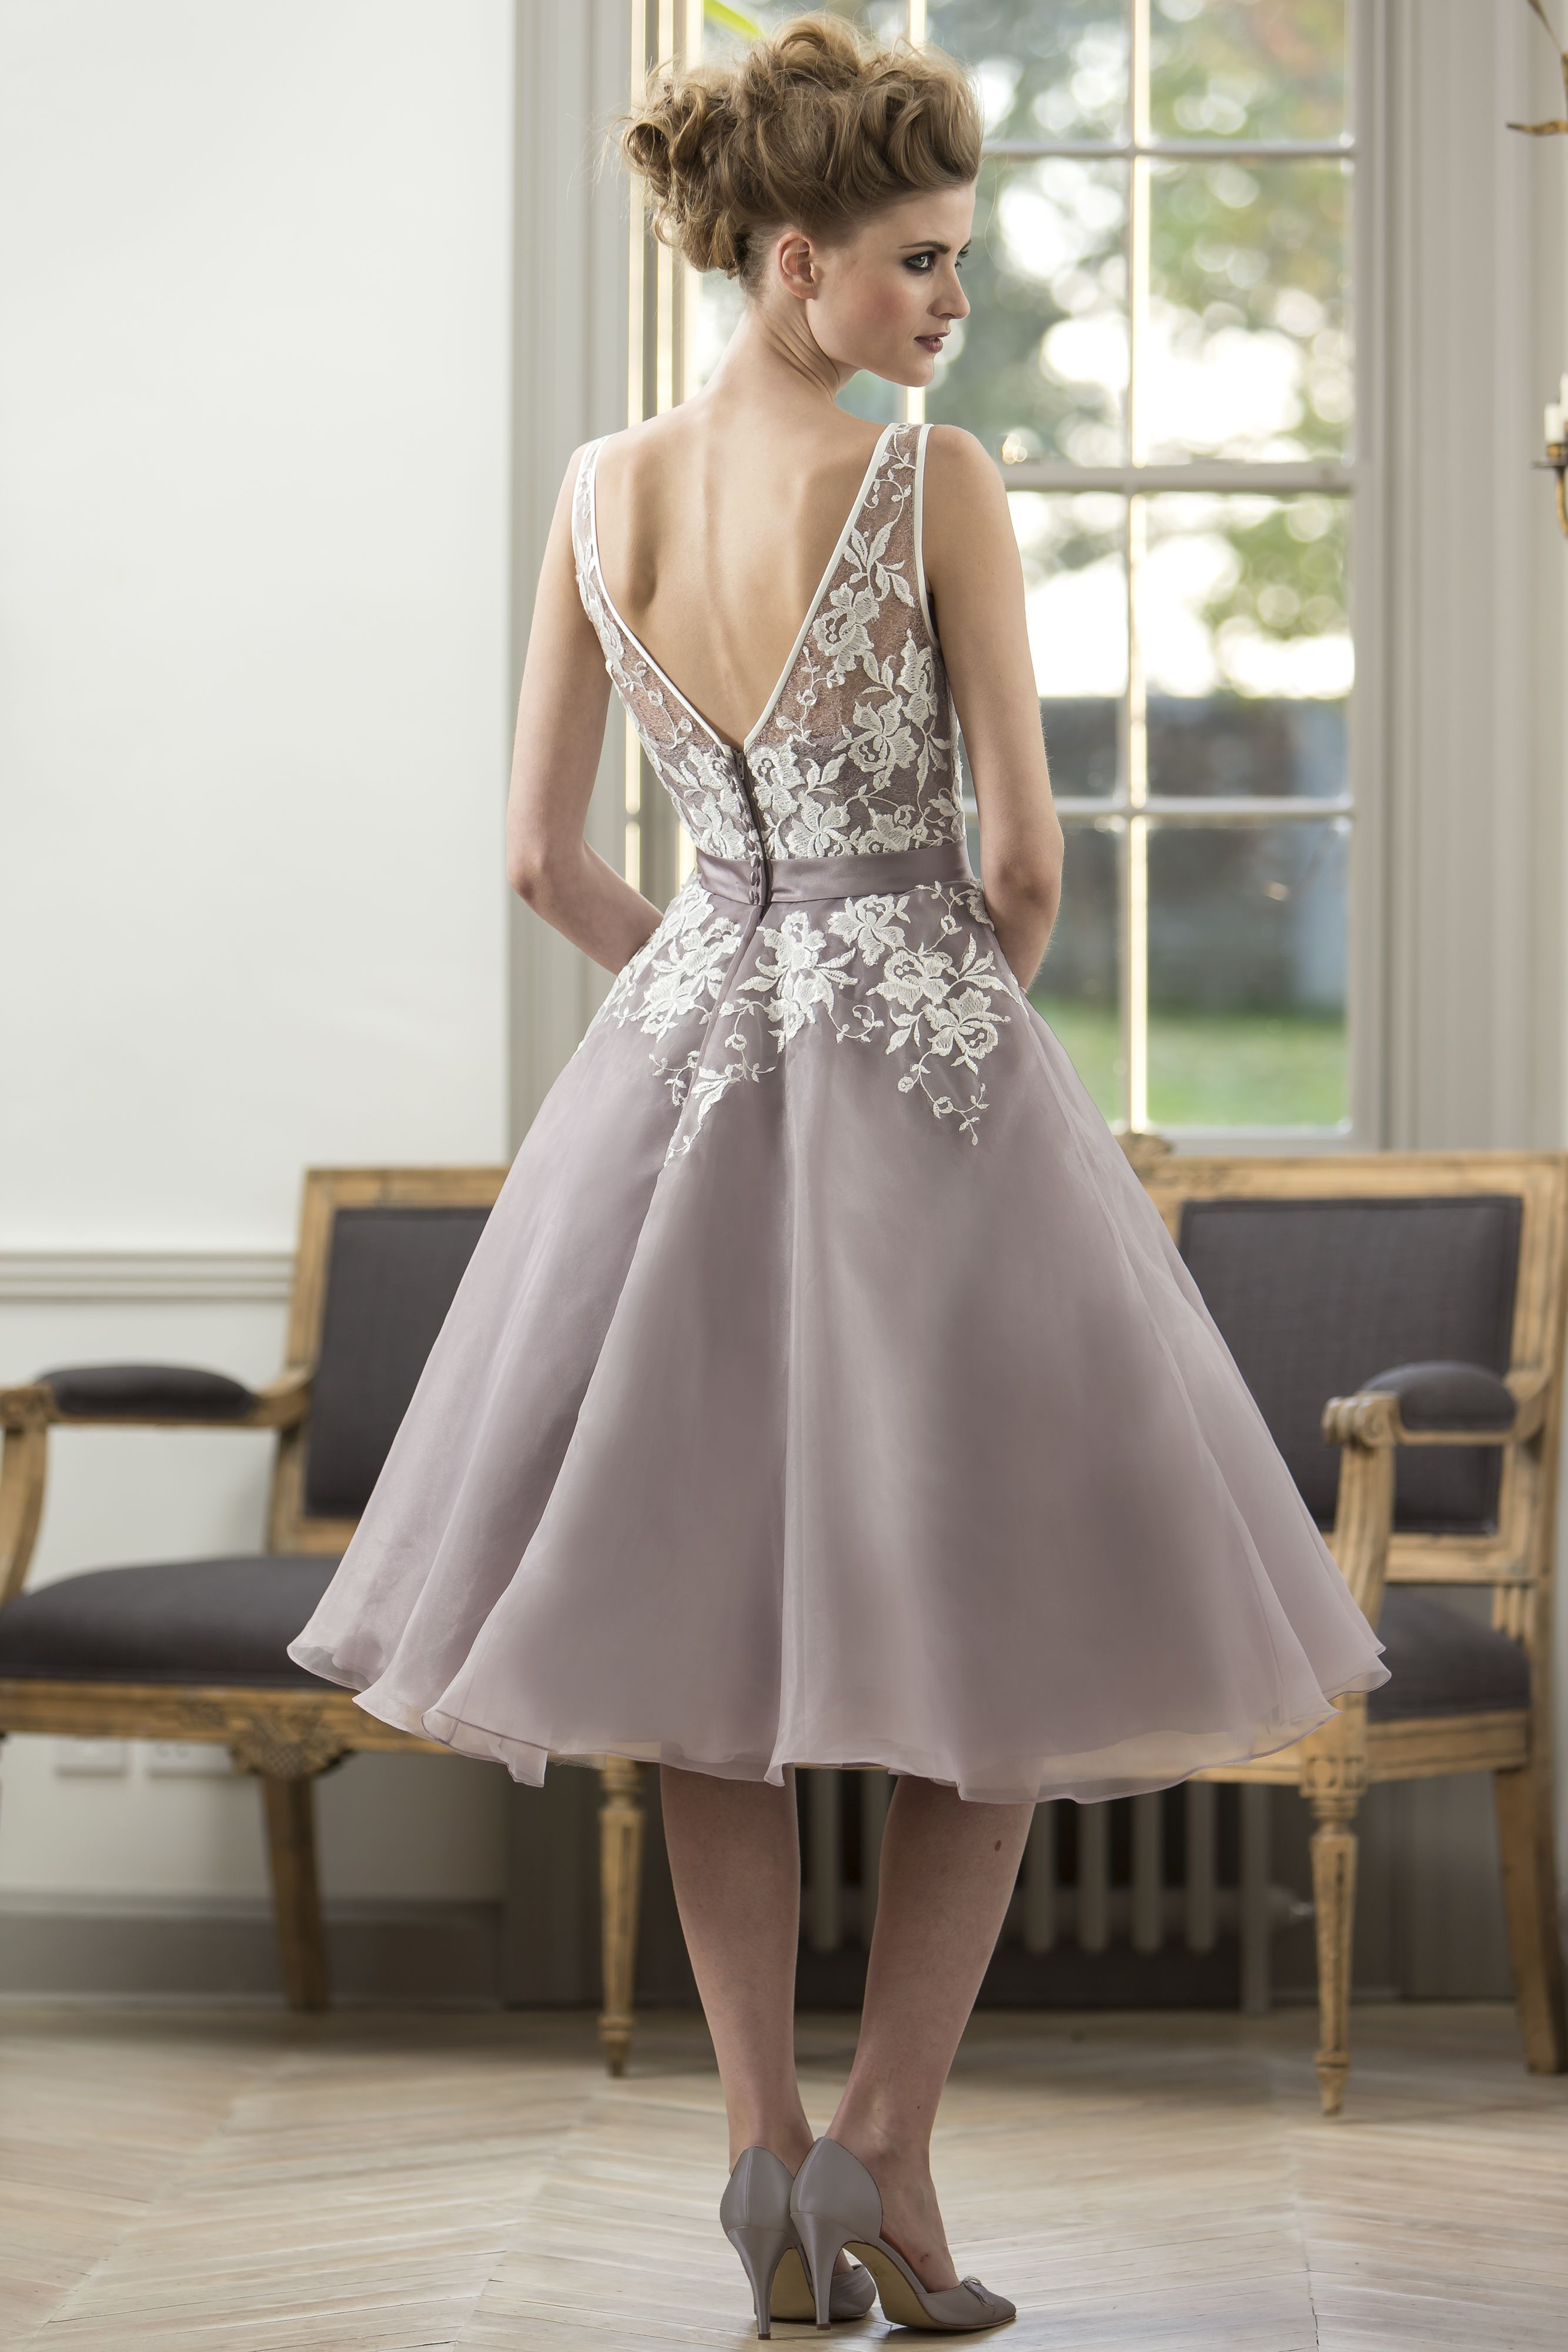 M570 t length bridesmaid dress with lace bodice and satin sash m570 t length bridesmaid dress with lace bodice and satin sash with bow at ombrellifo Image collections